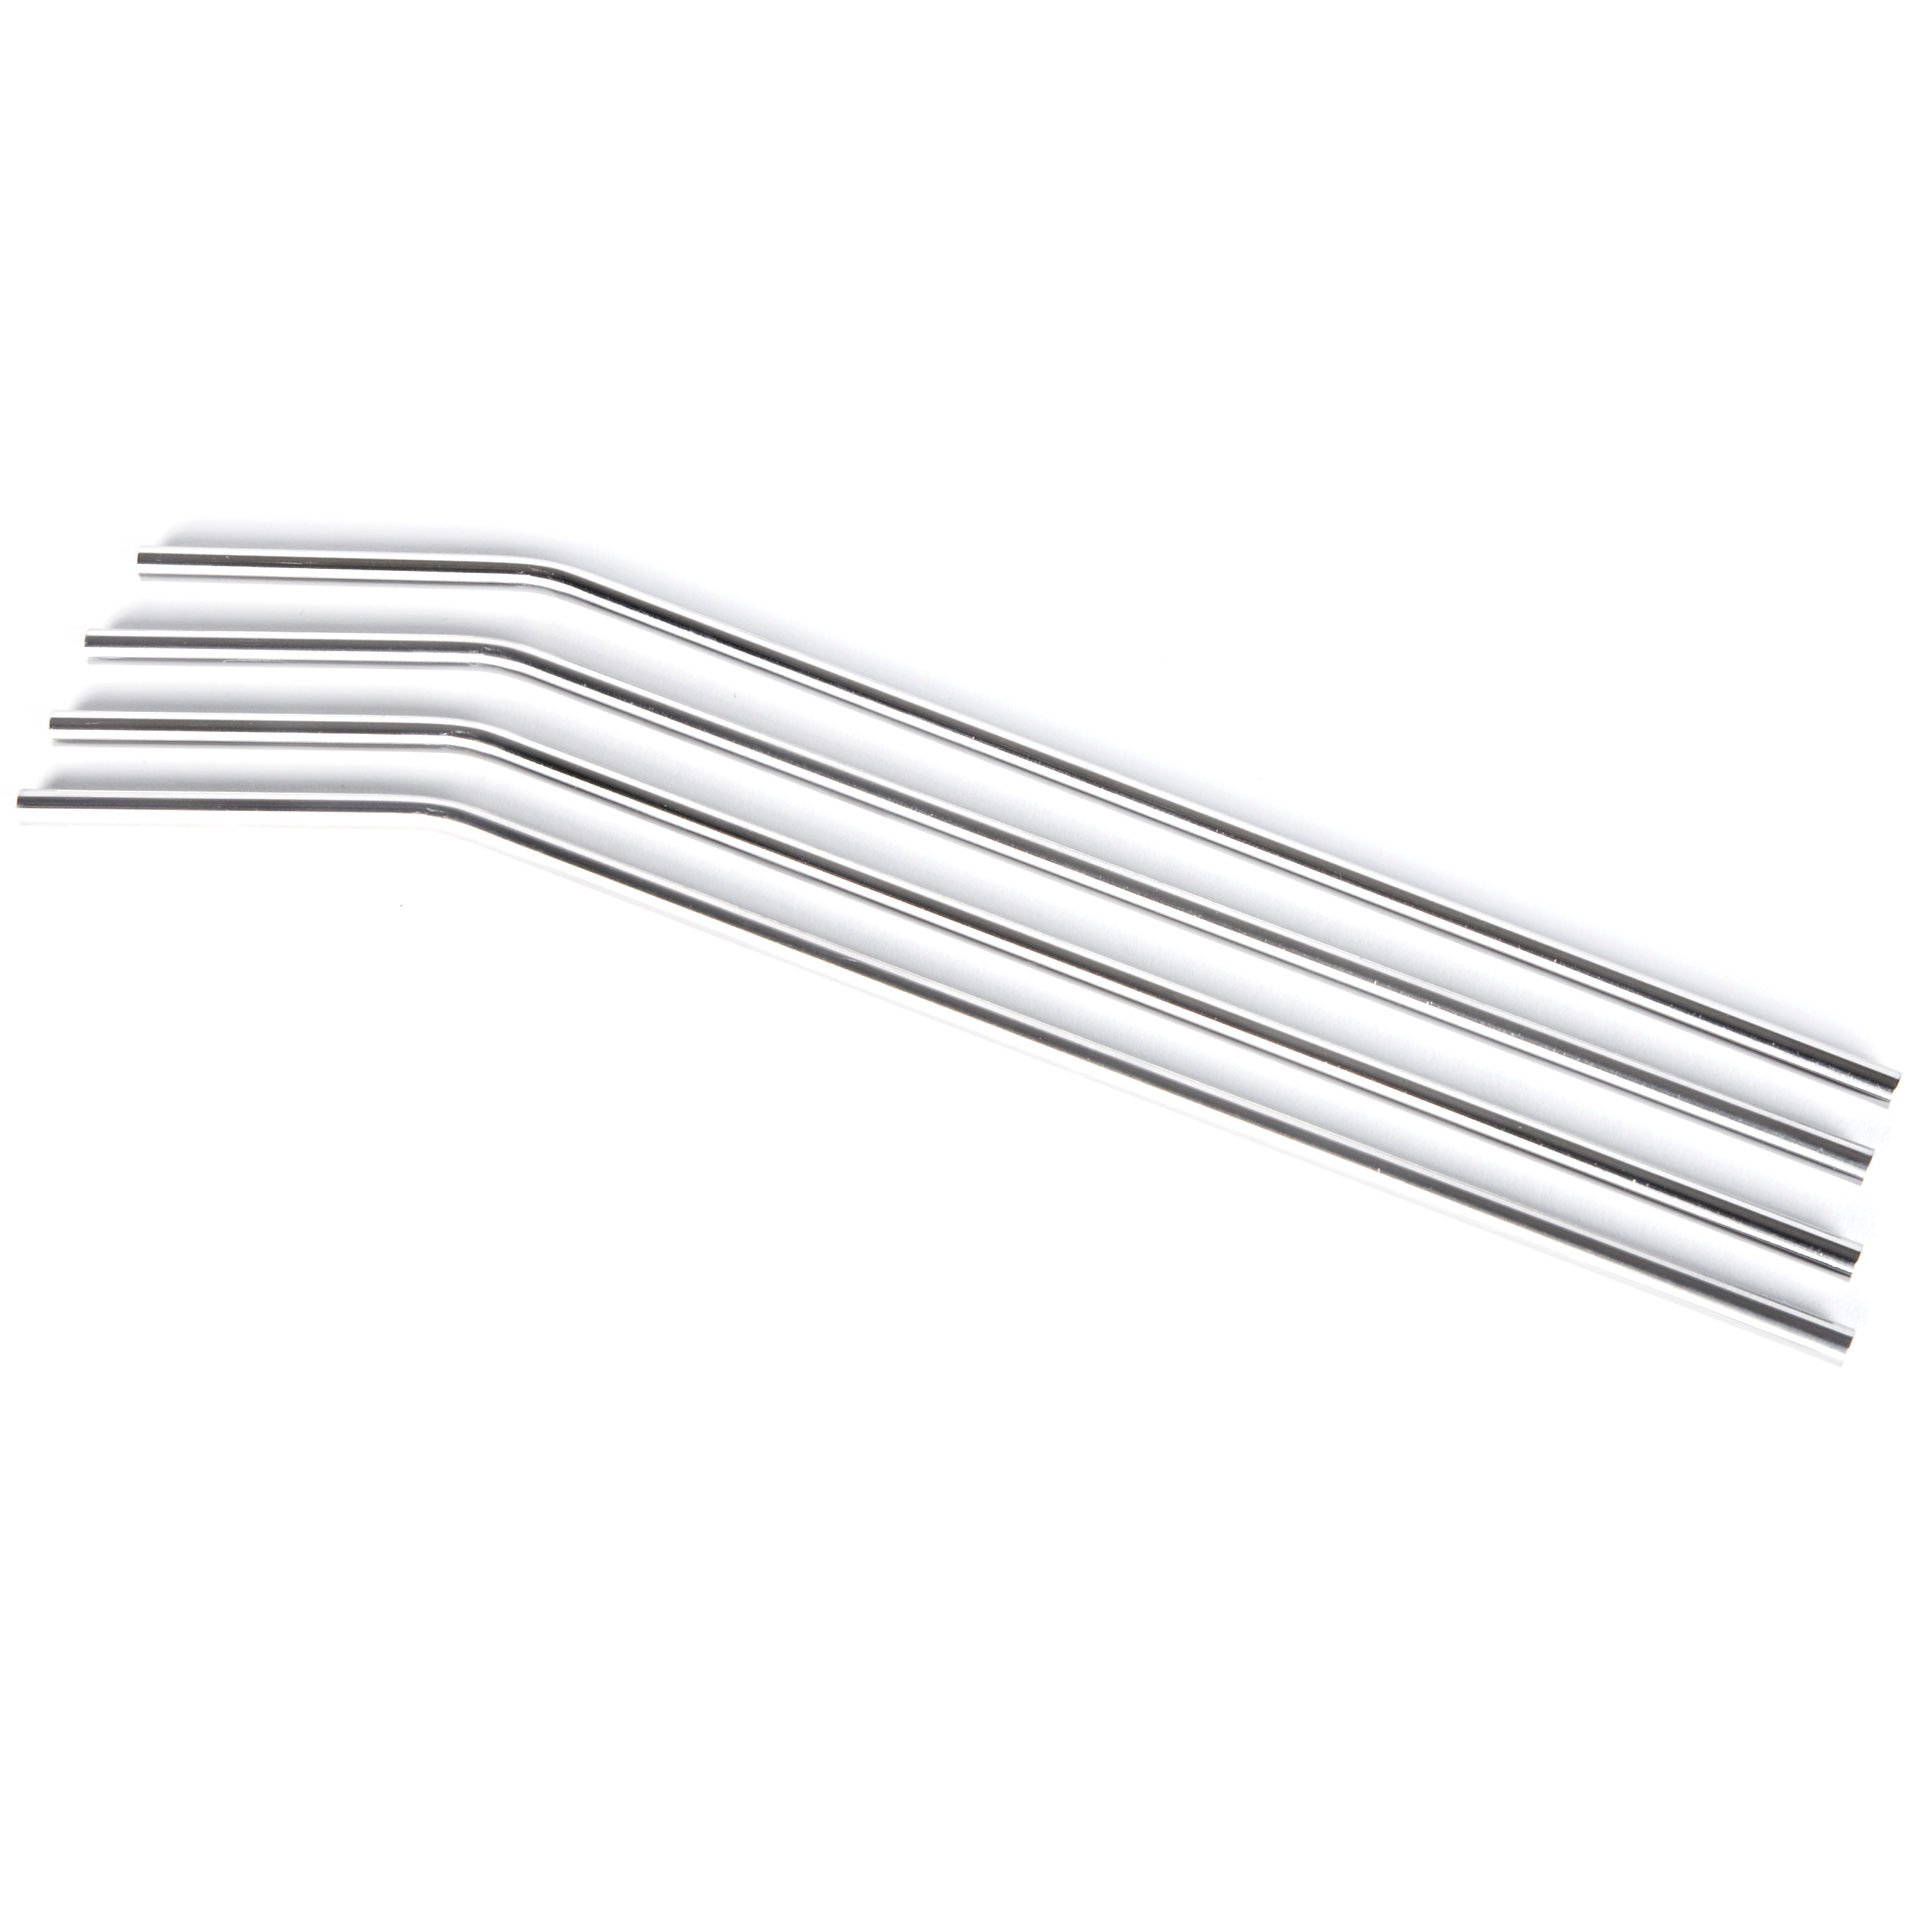 Onyx 18/8 Stainless Steel 4 Piece Large Straw Set